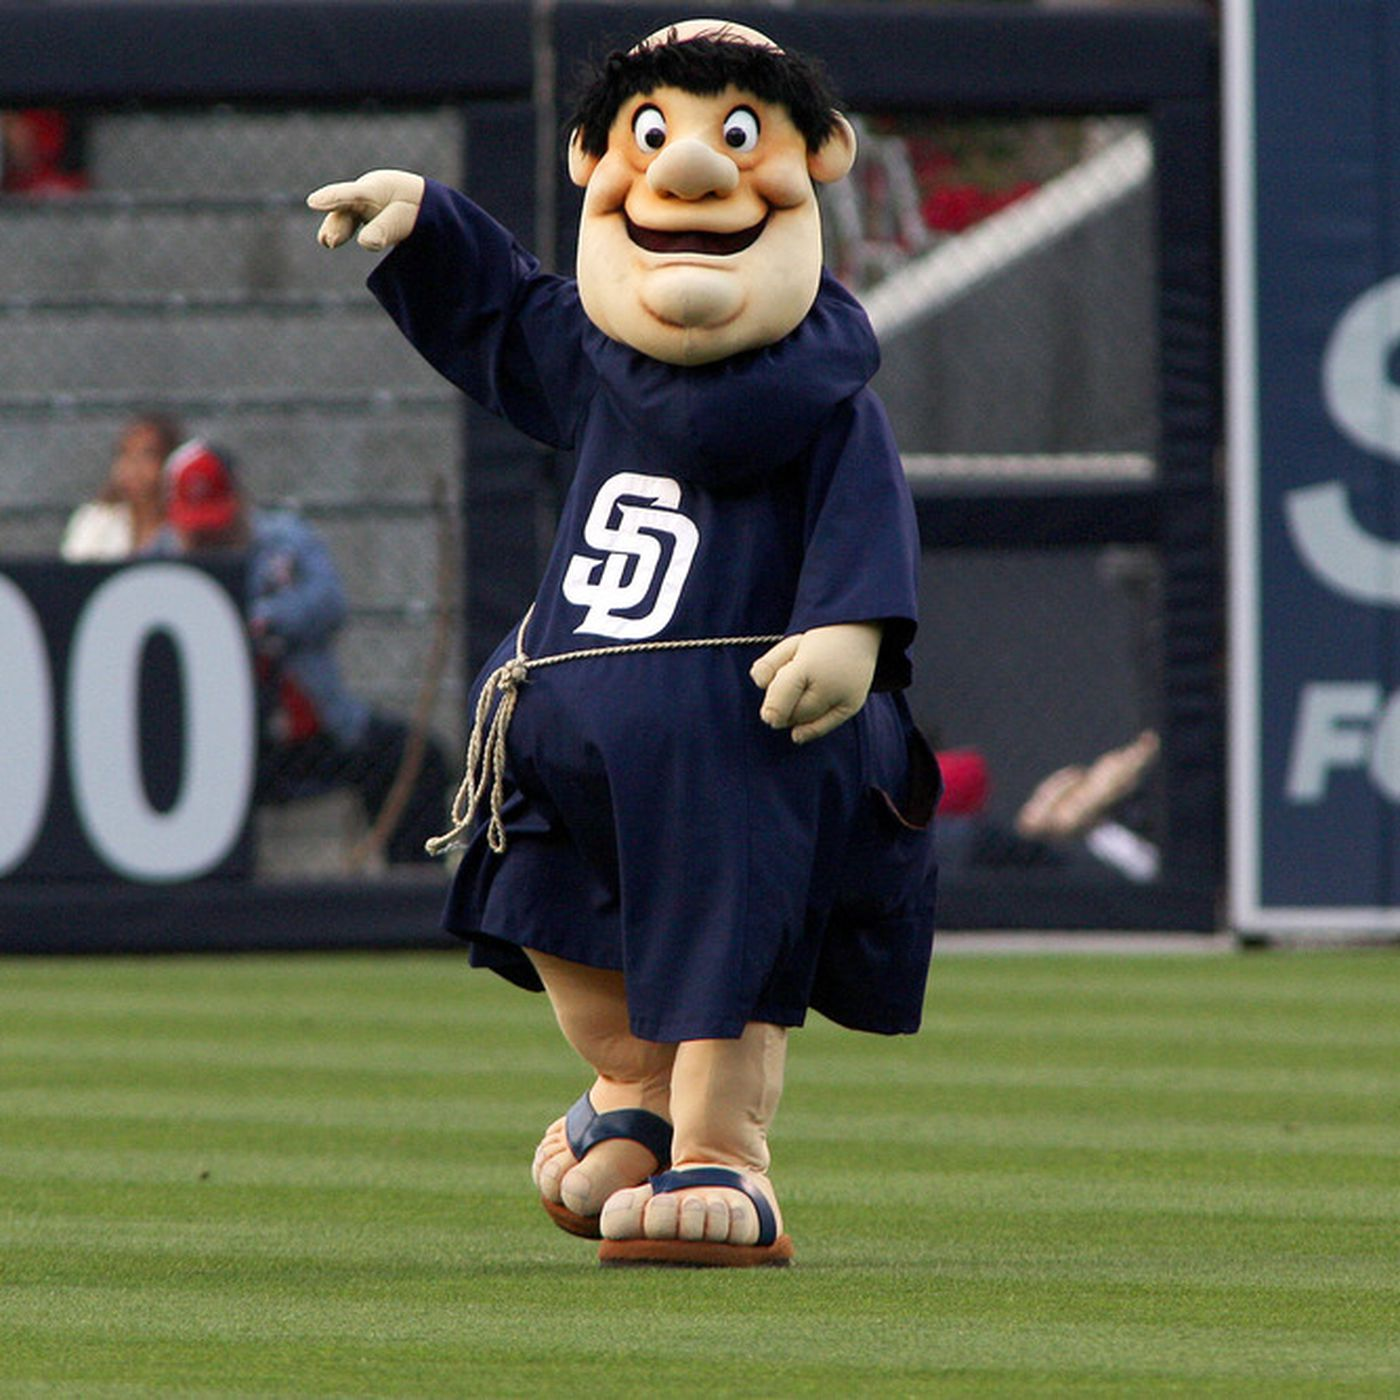 df61436b9b434d Five For Five: A Mets/Padres Series Preview With Gaslamp Ball ...